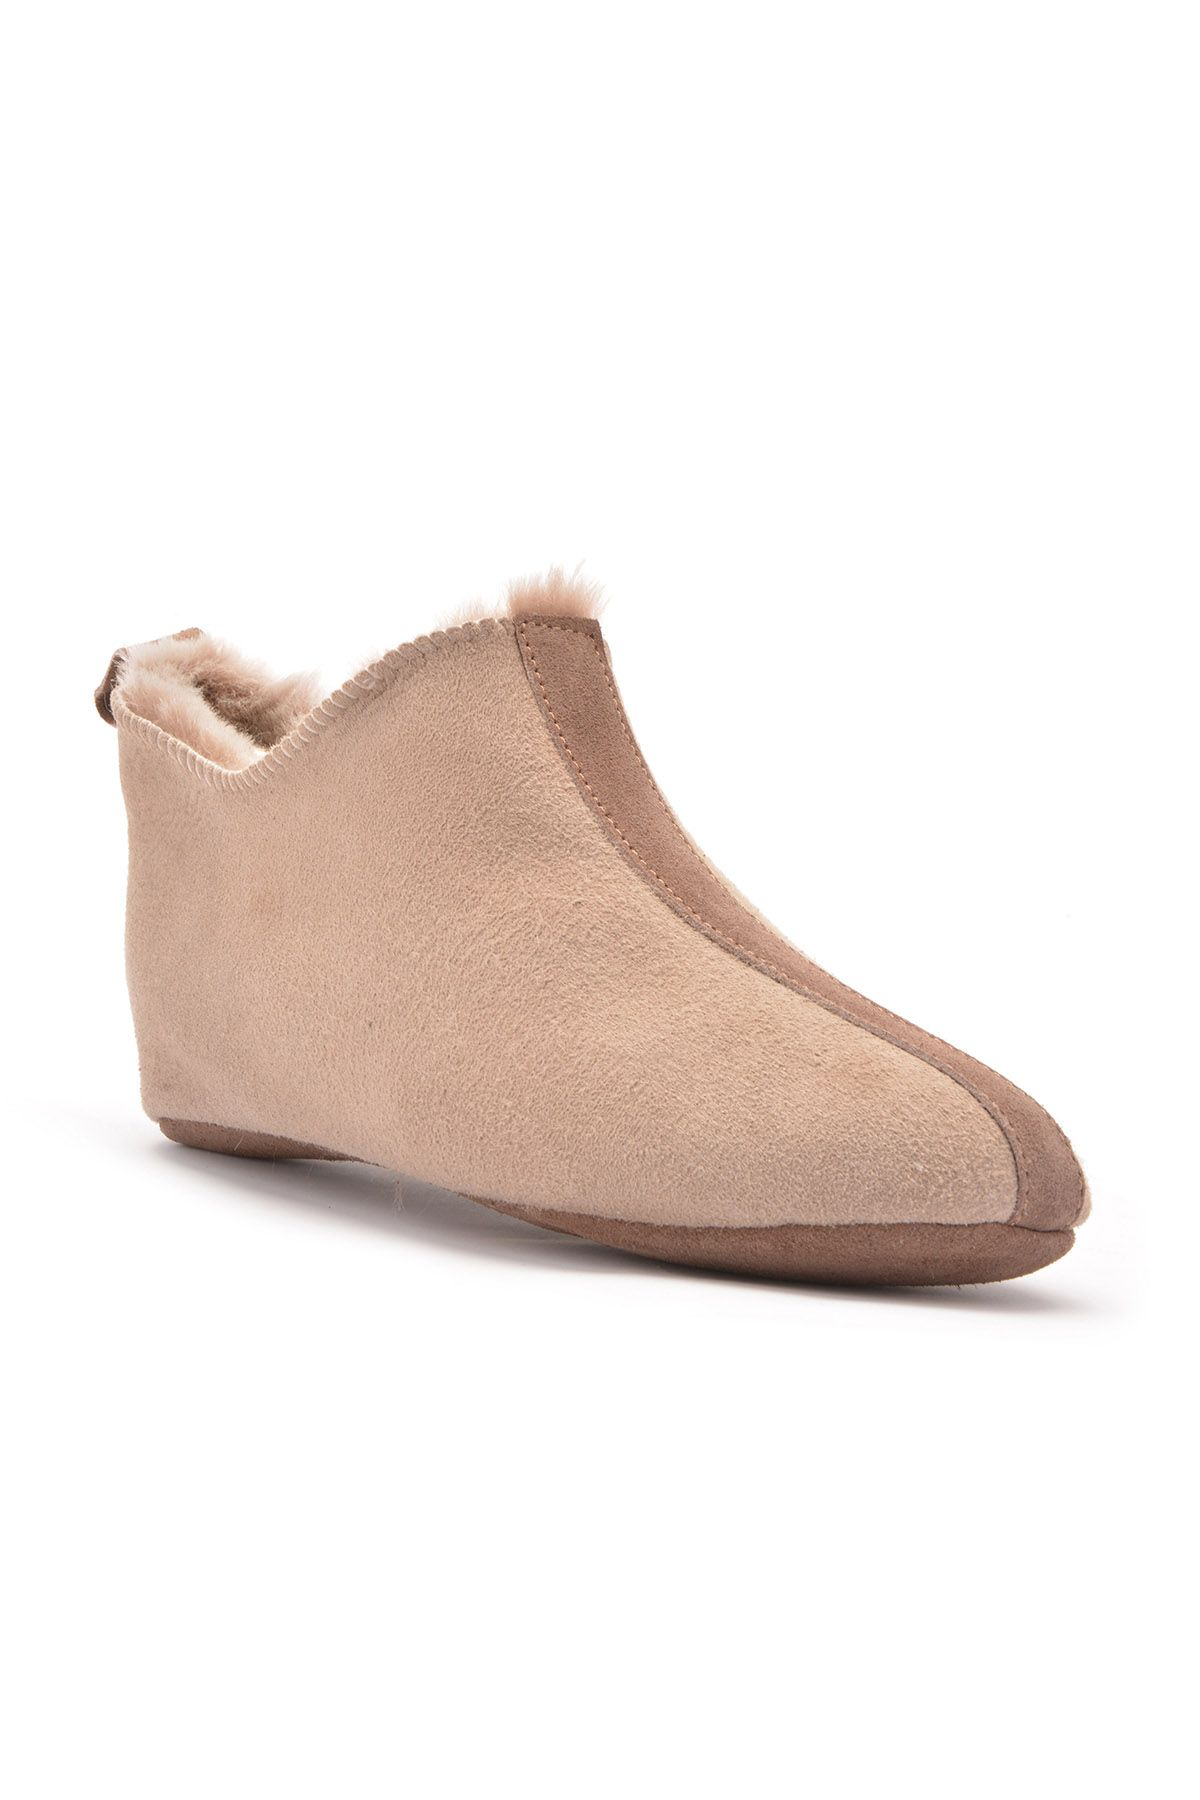 Pegia Women House-shoes From Genuine Fur Sand-colored